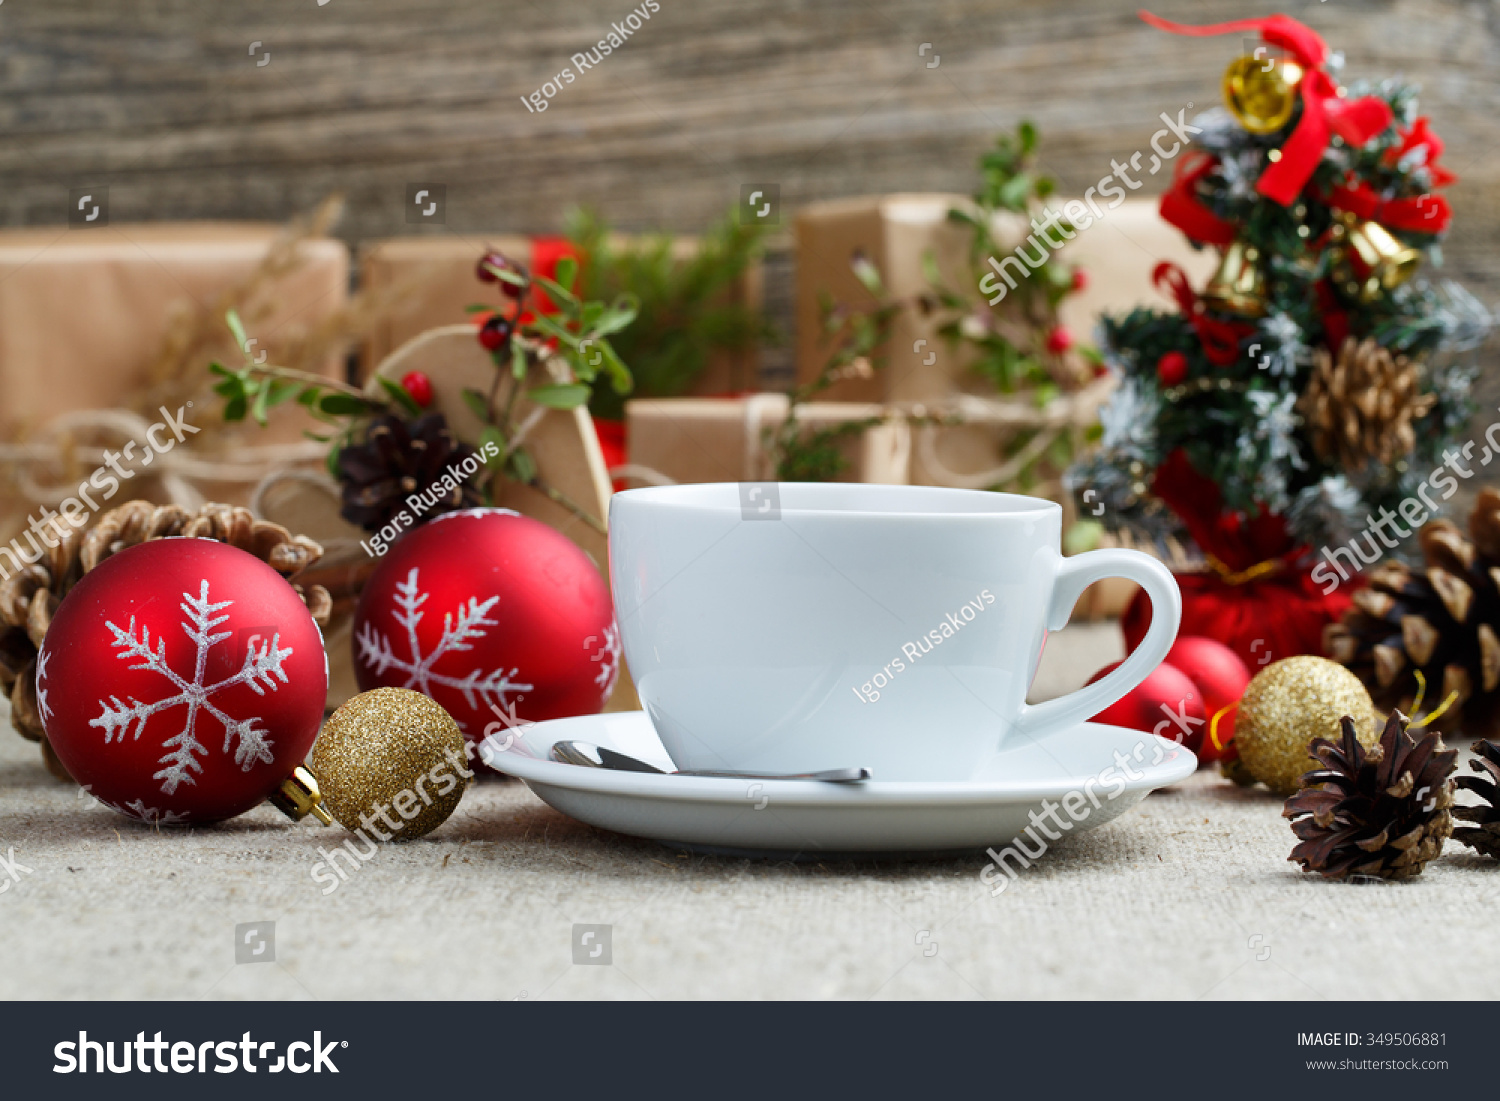 Christmas Table Green Tea Gifts Stock Photo (Edit Now) 349506881 ...